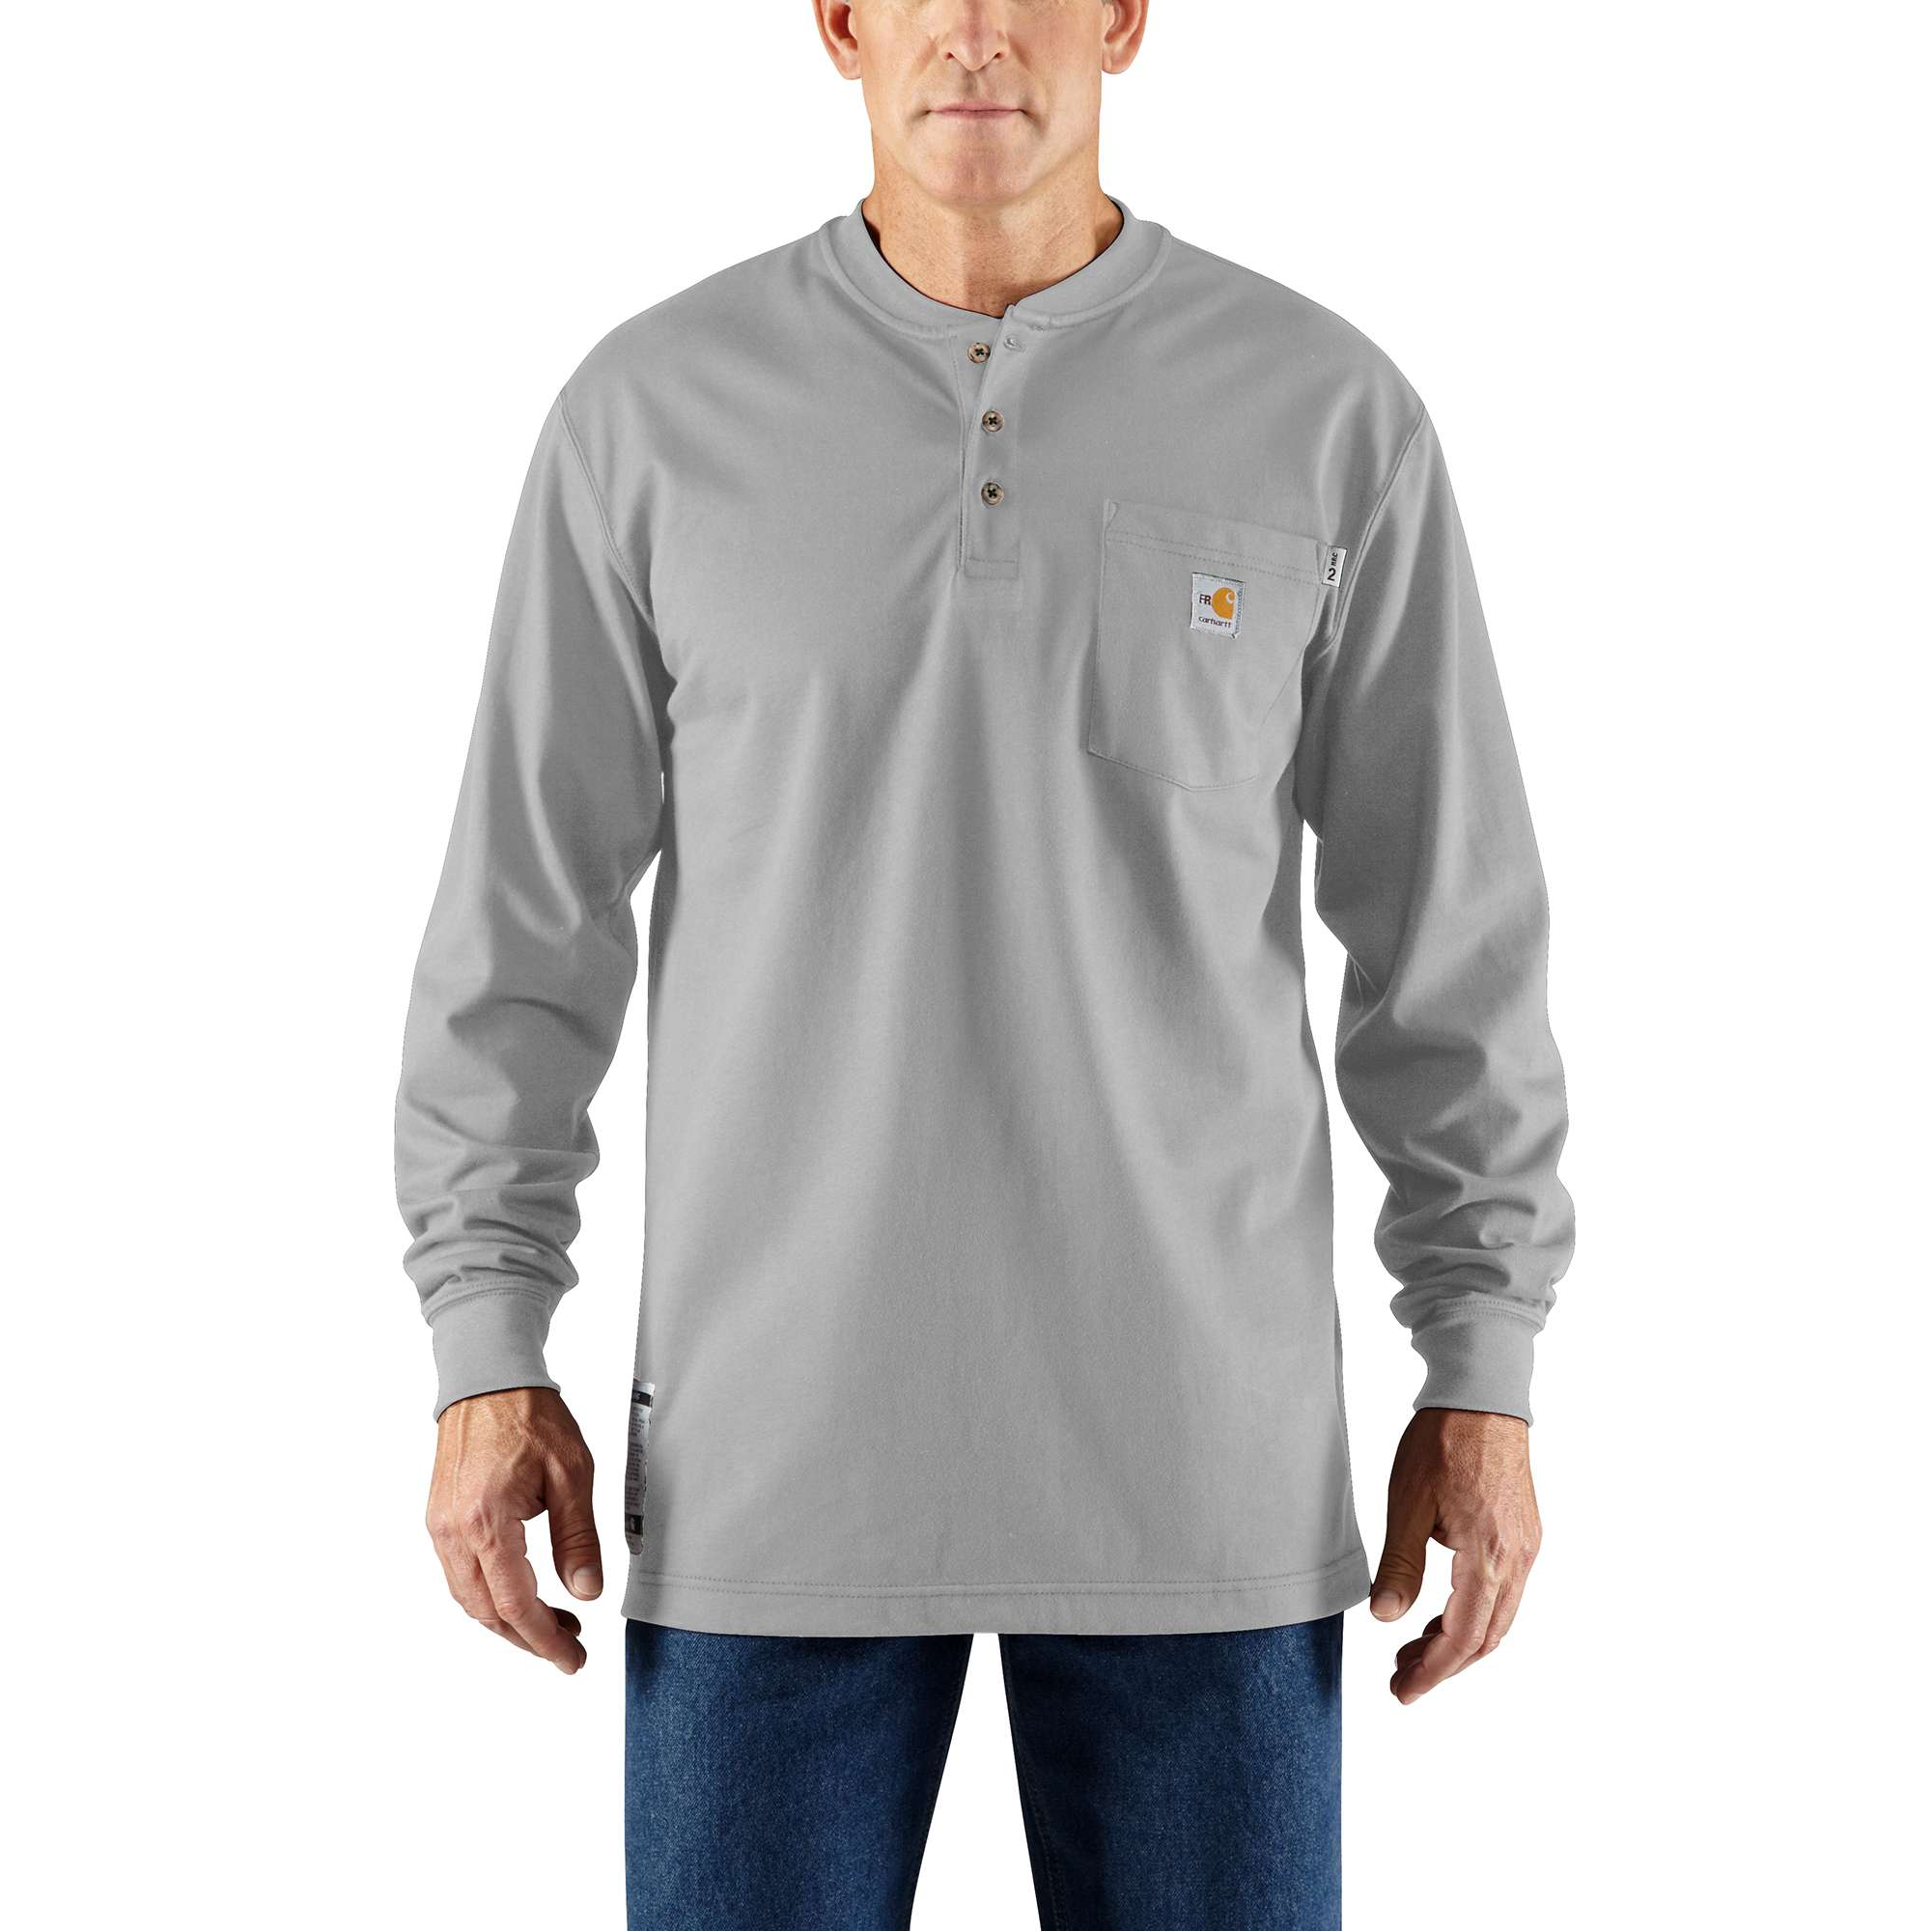 Carhartt Flame-Resistant Carhartt Force Cotton Long-Sleeve Henley